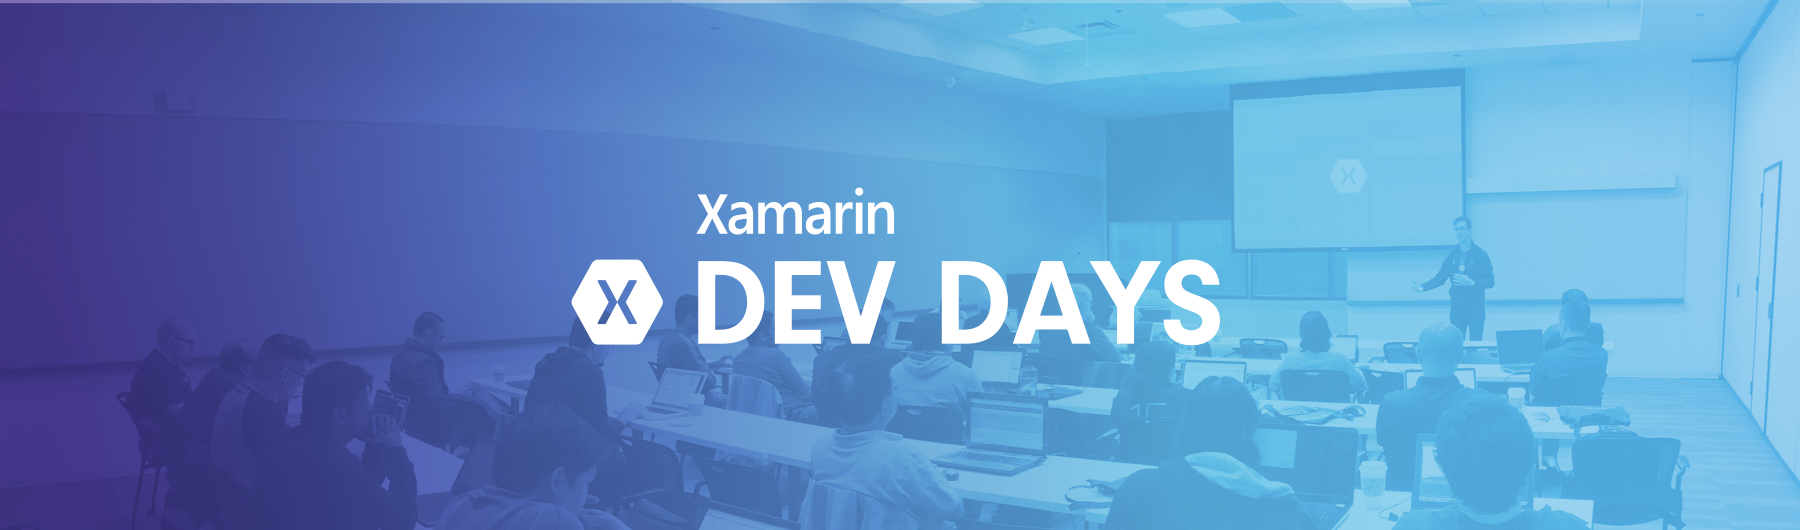 Xamarin Dev Days - Singapore